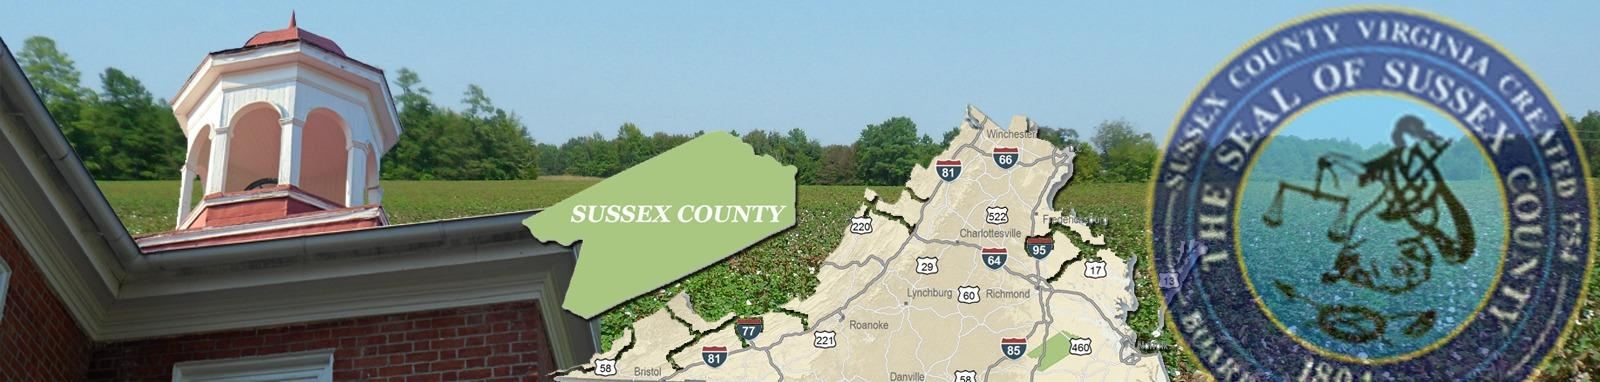 About Sussex County Cover